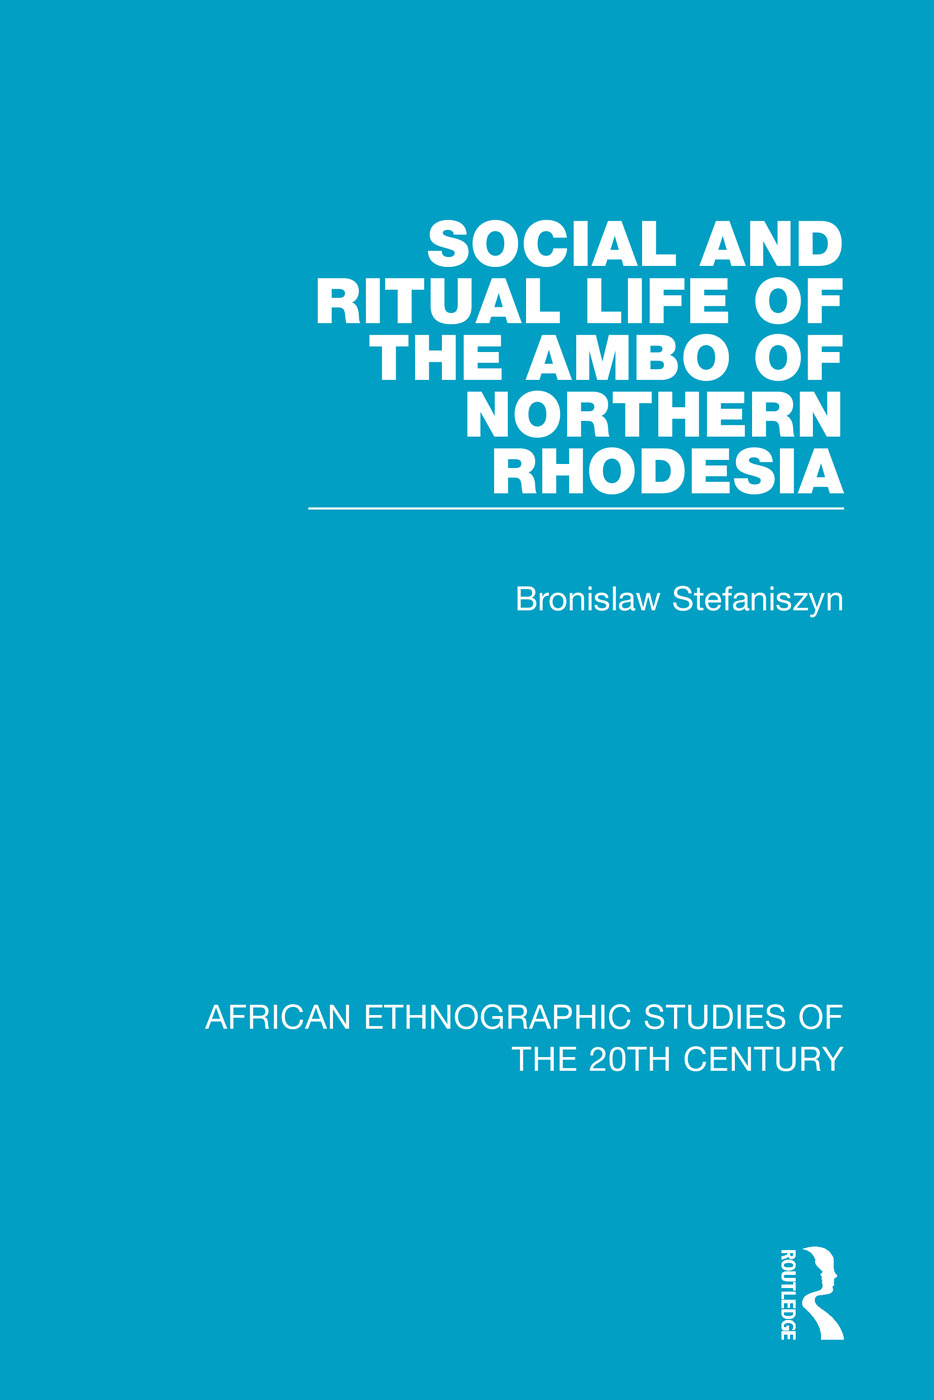 Social and Ritual Life of the Ambo of Northern Rhodesia book cover